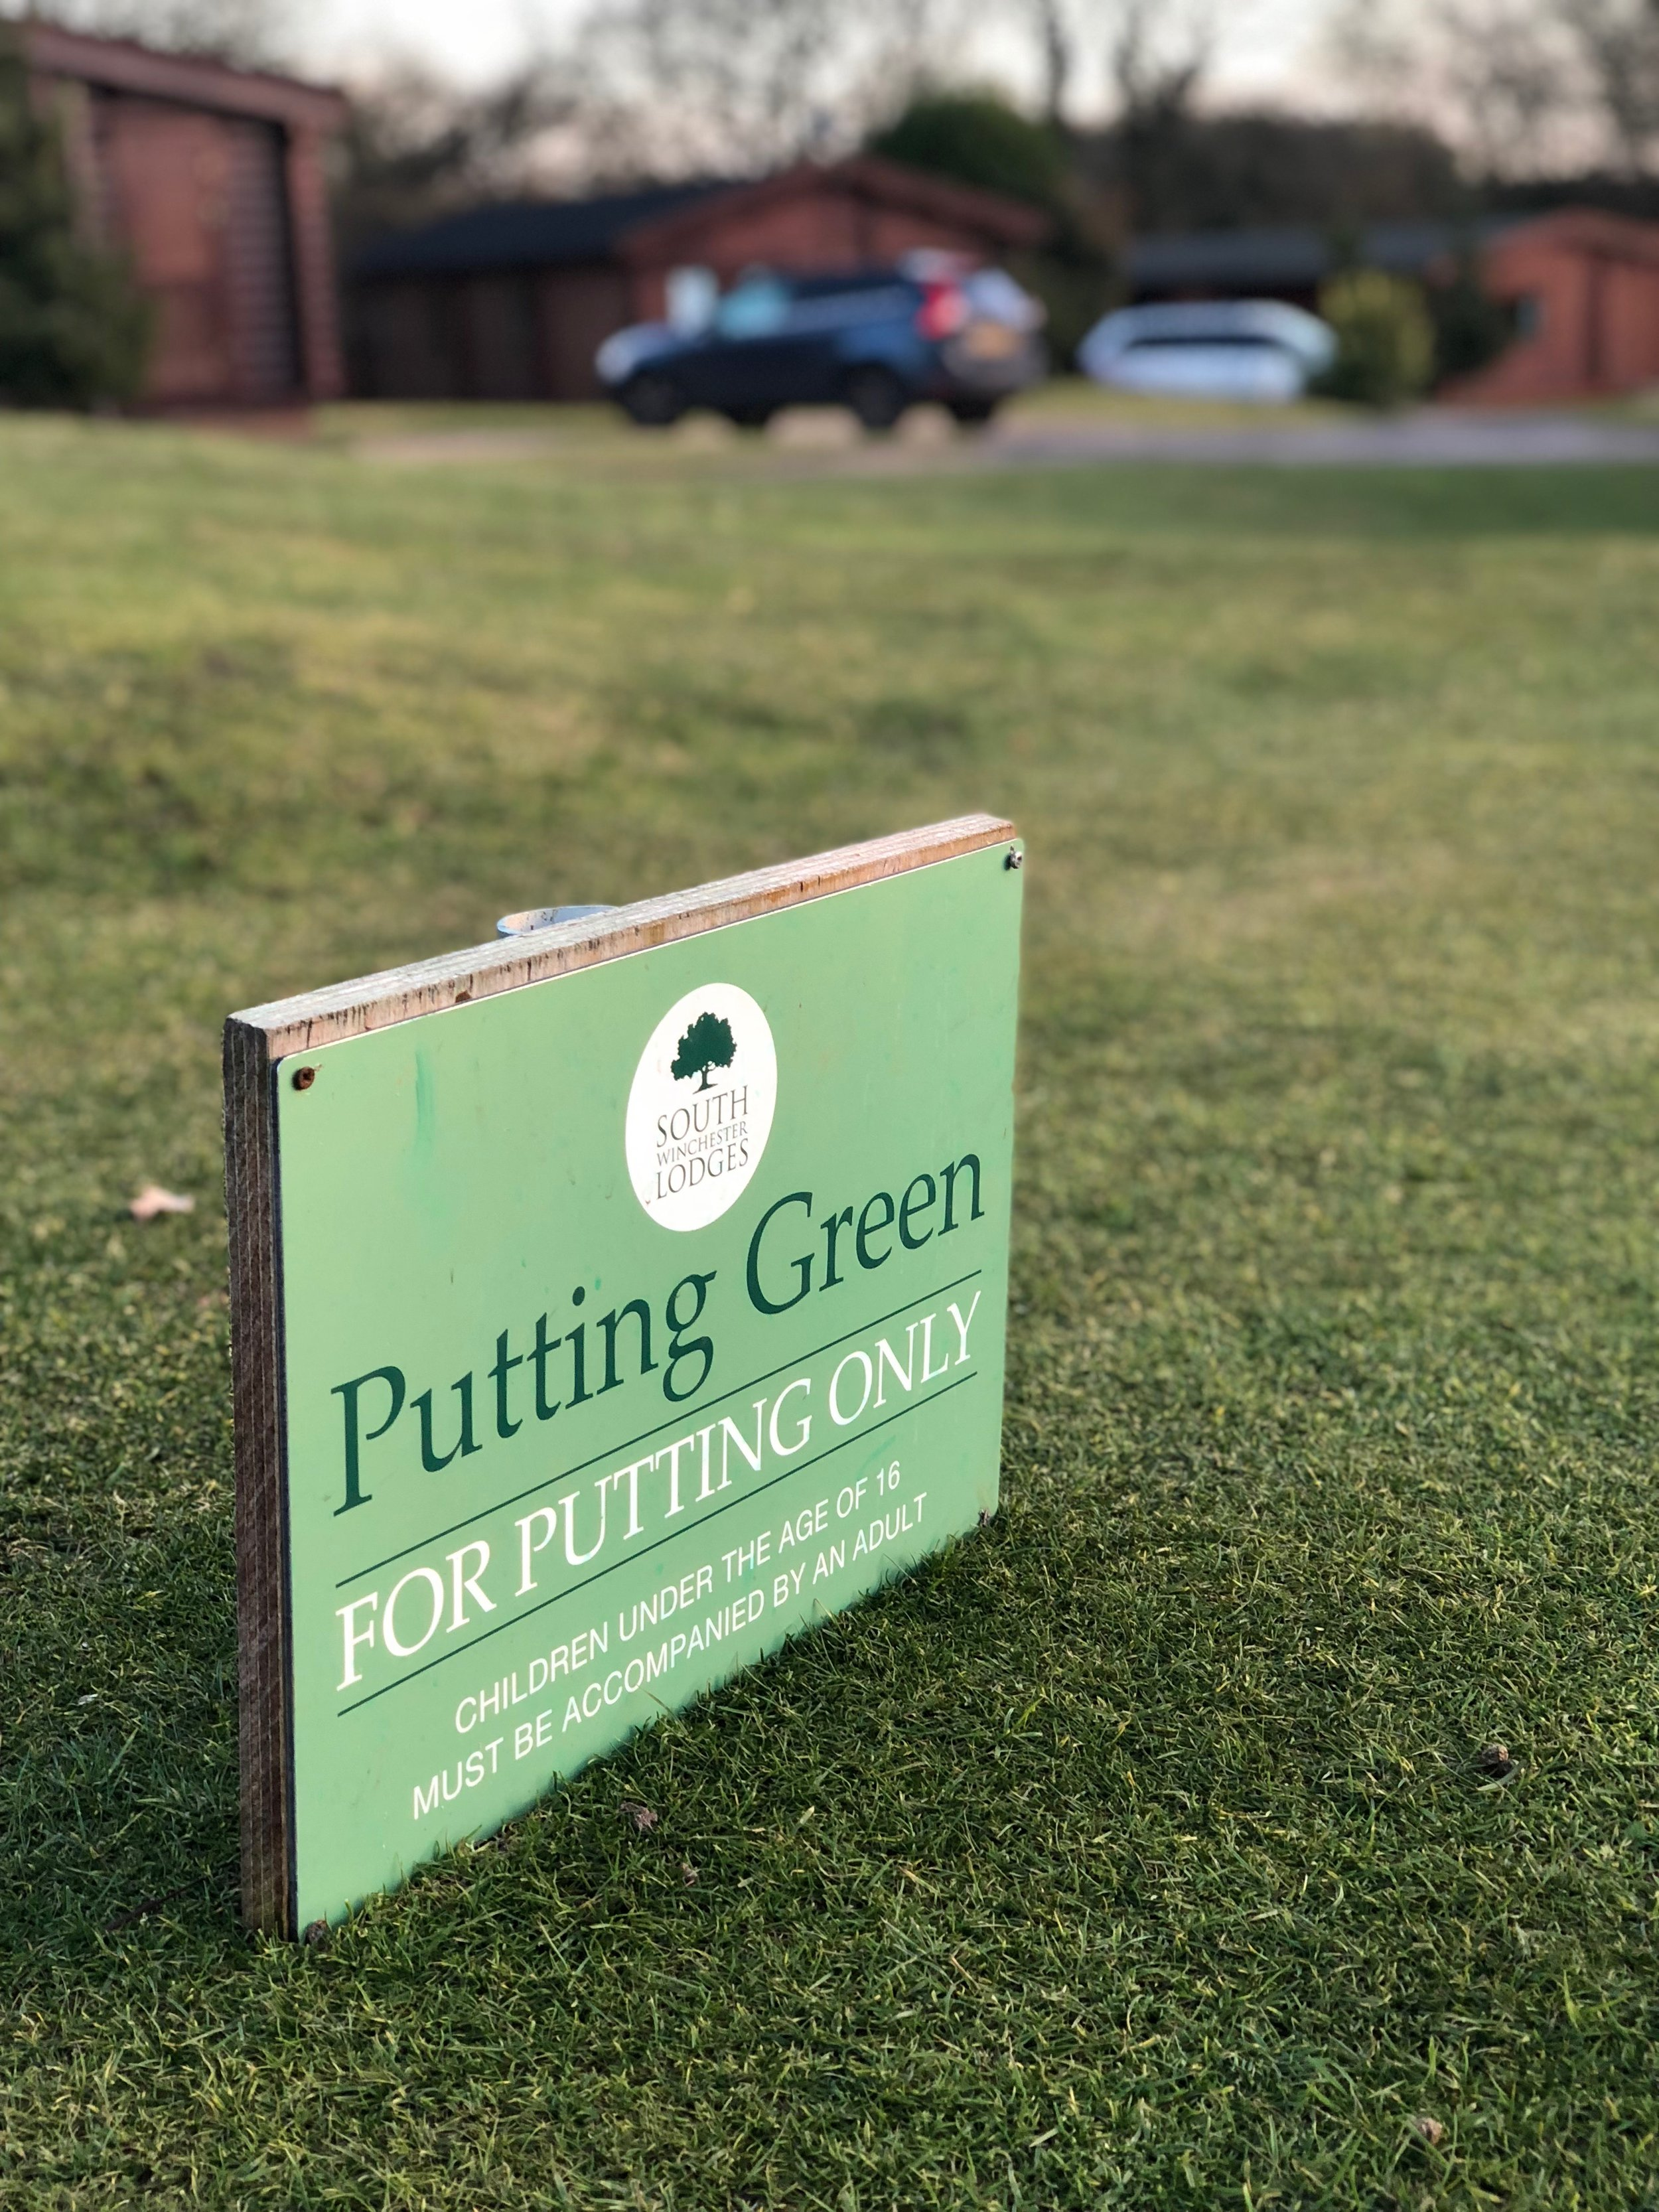 High quality putting green is great for families